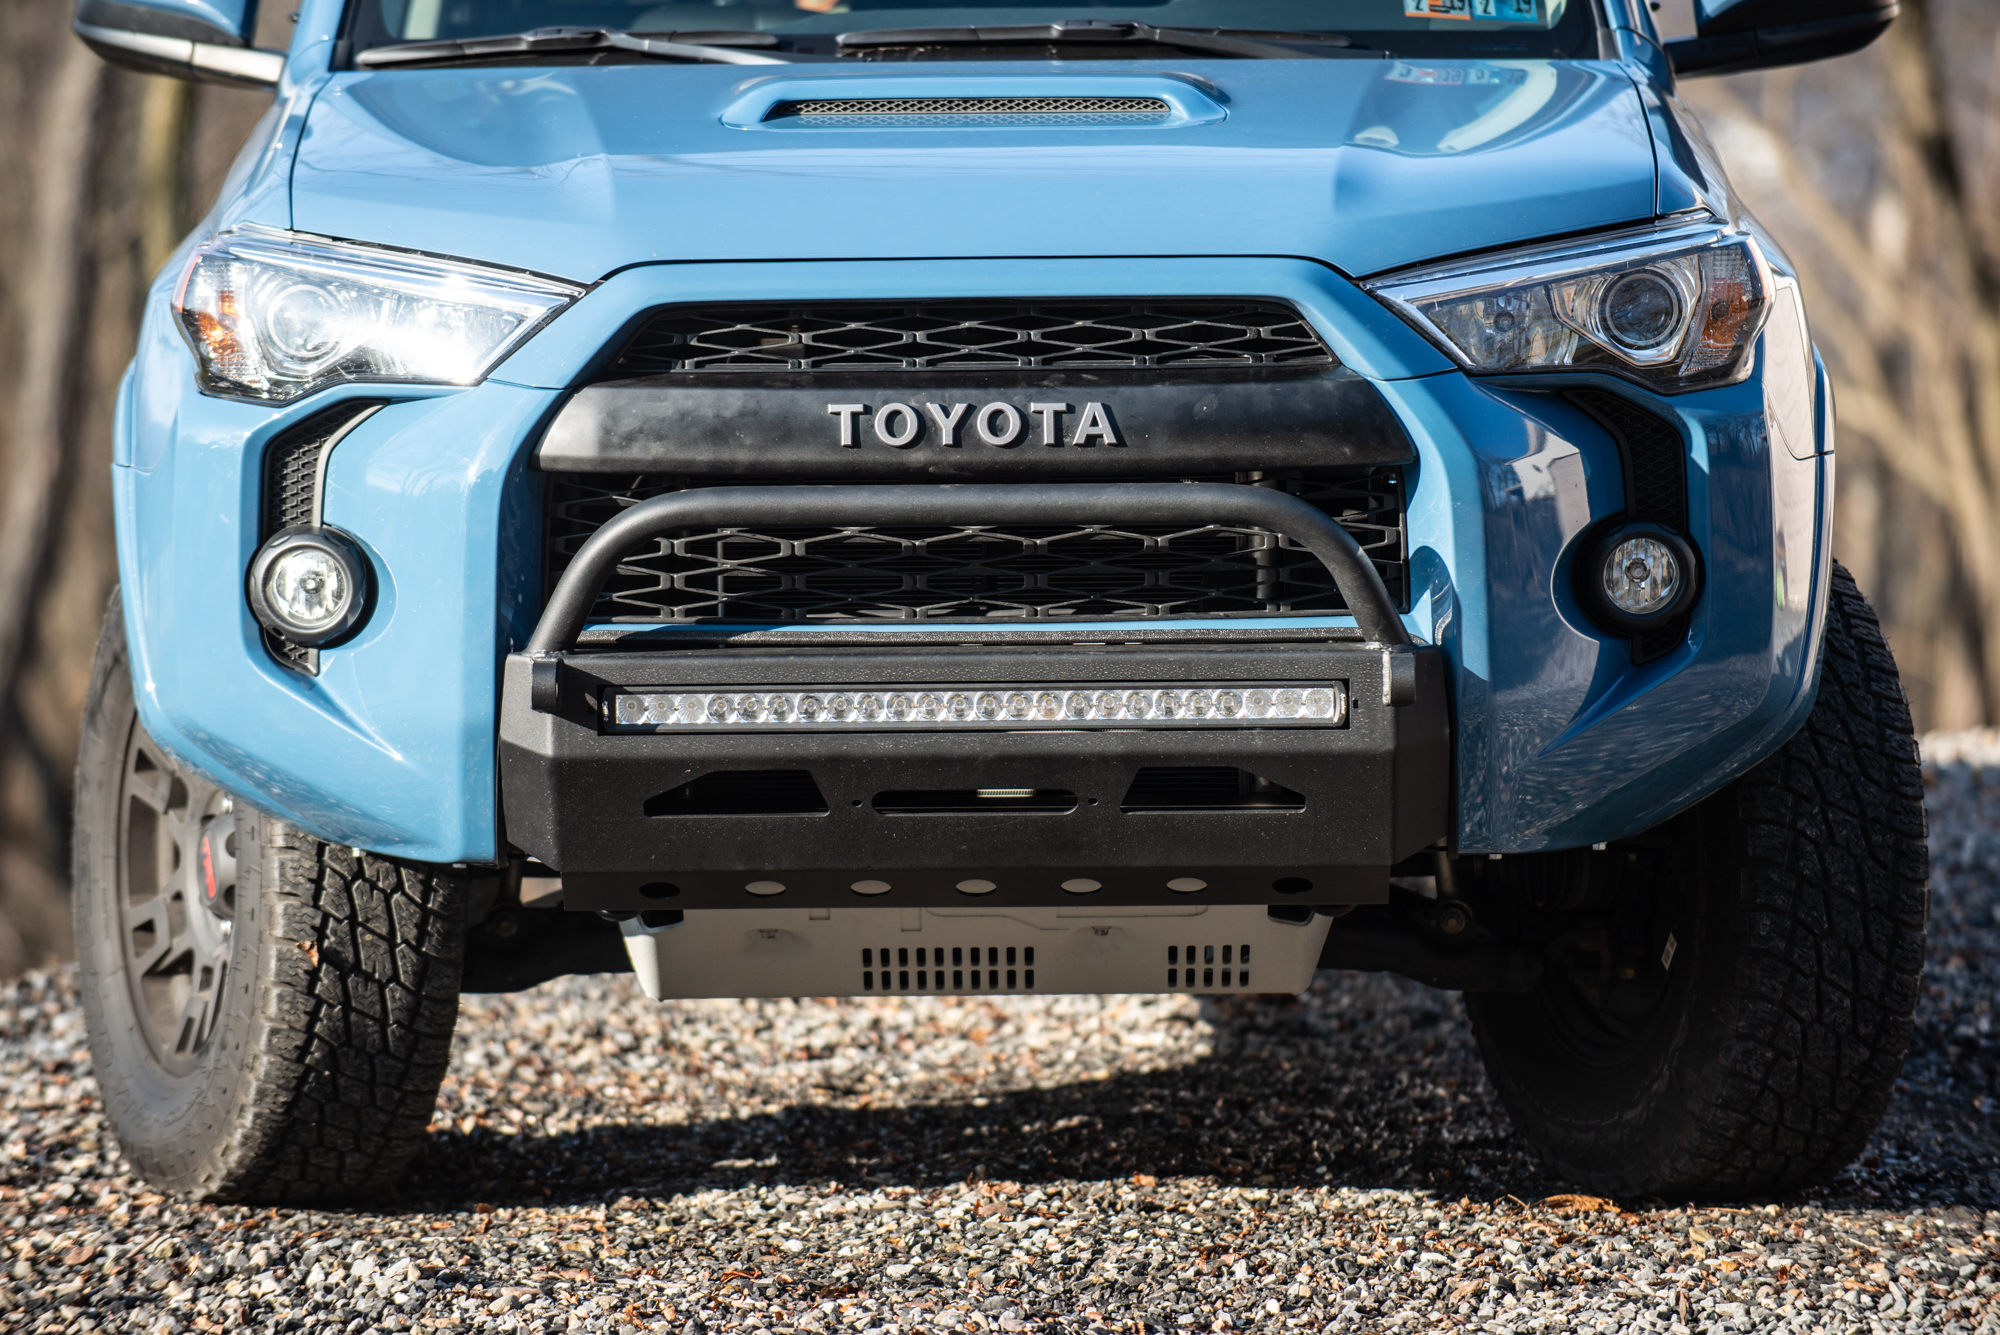 Toyota 4runner Bumper >> Mostro Bumper For 2014 Toyota 4runner 5th Gen Appalachia Off